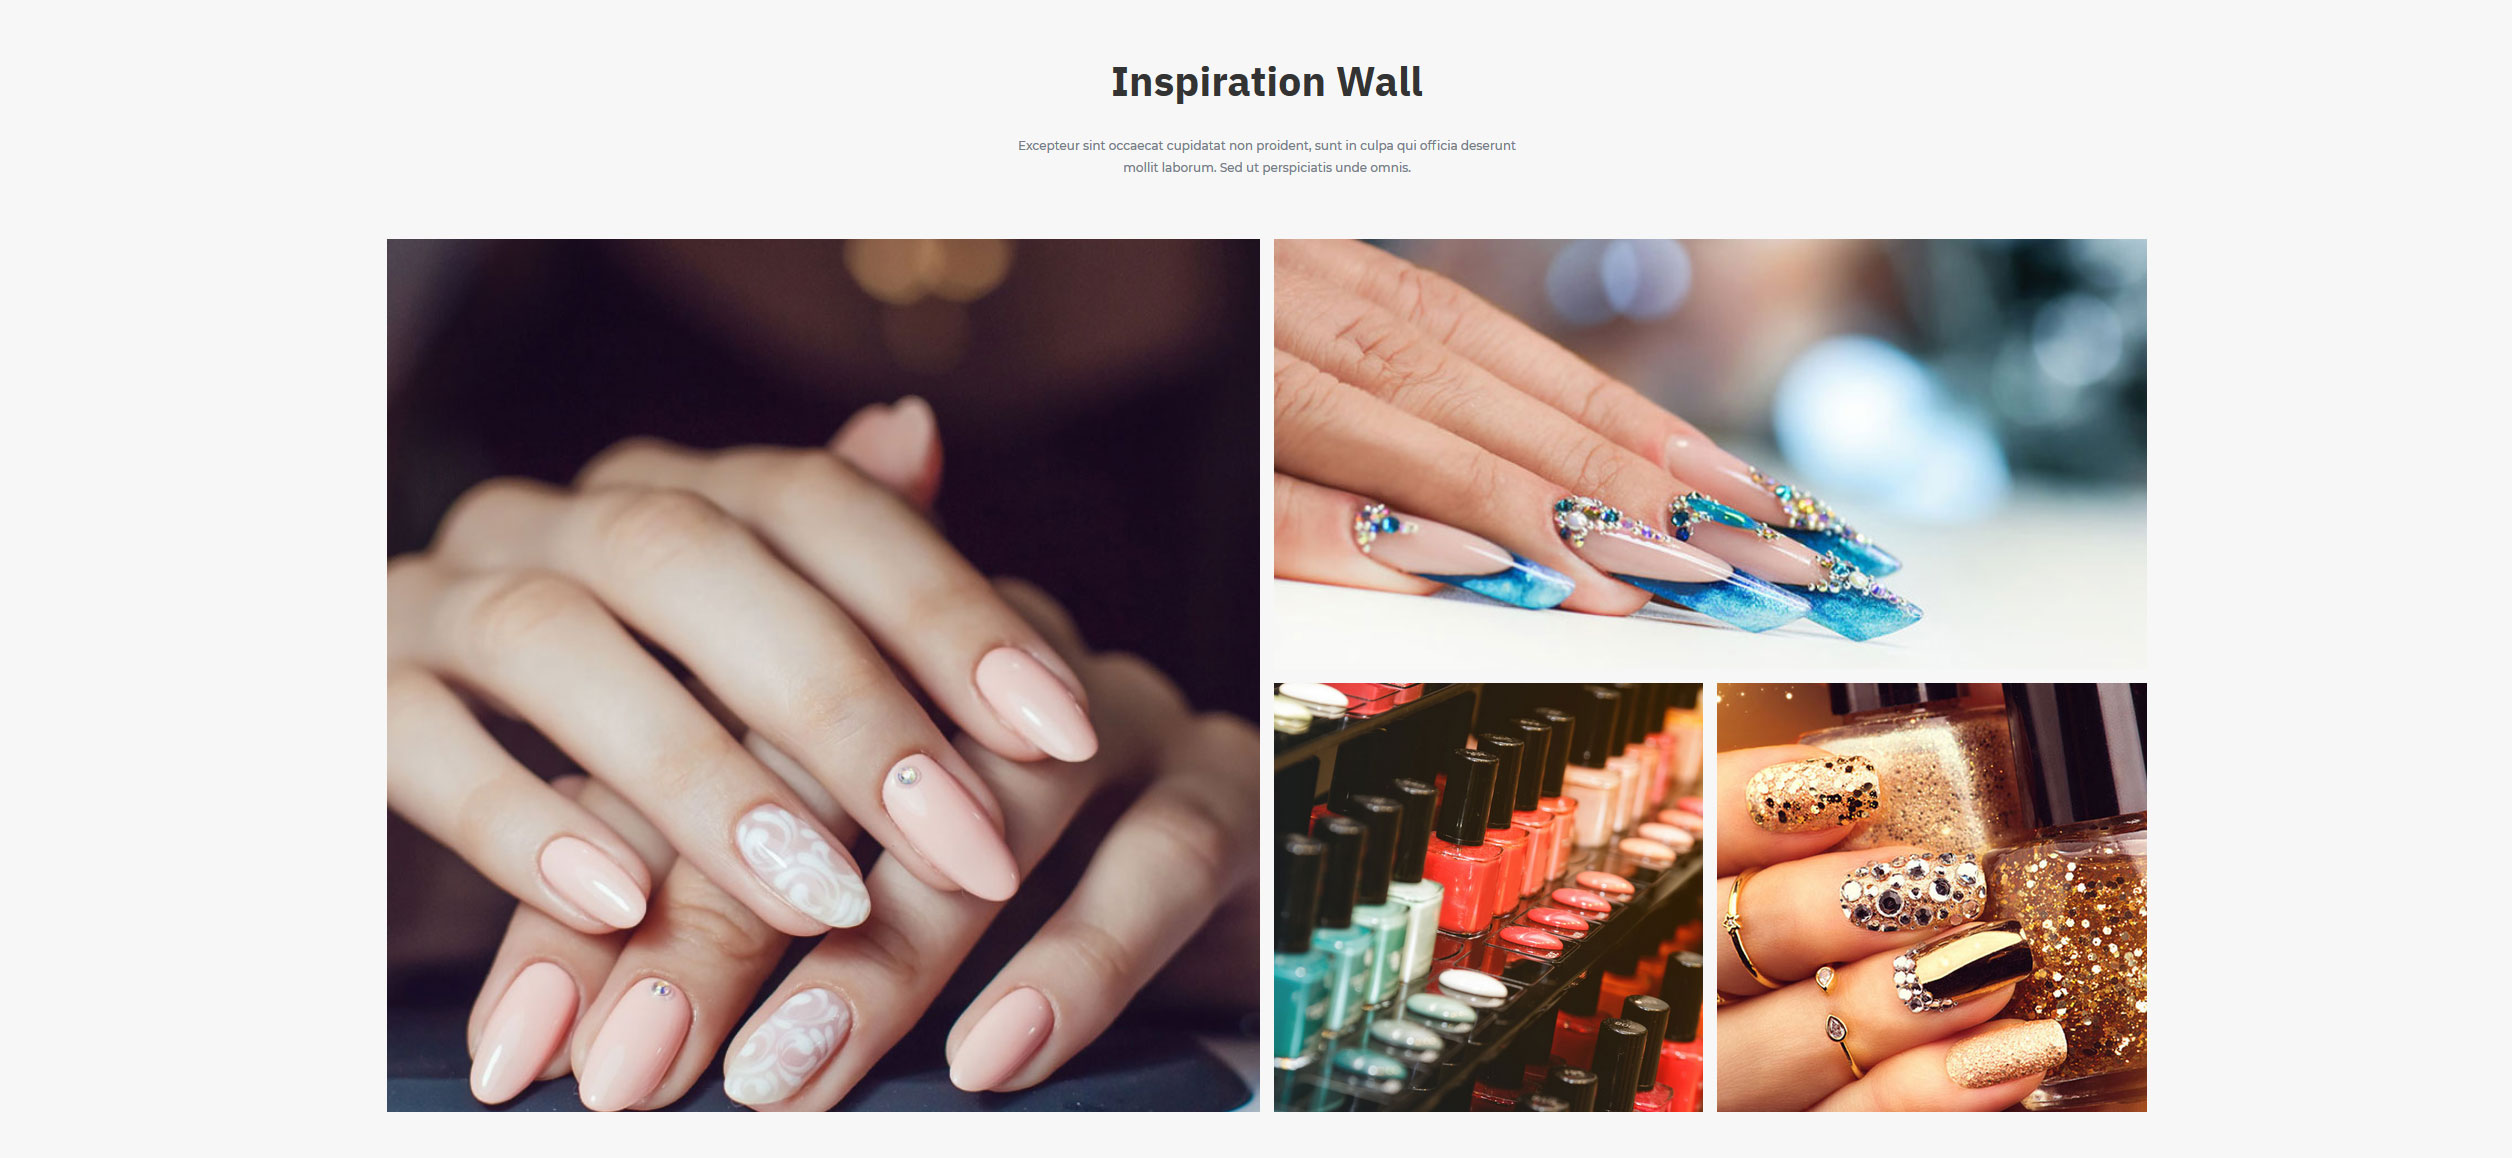 Website for Nail Salons v1 - Gallery of Work